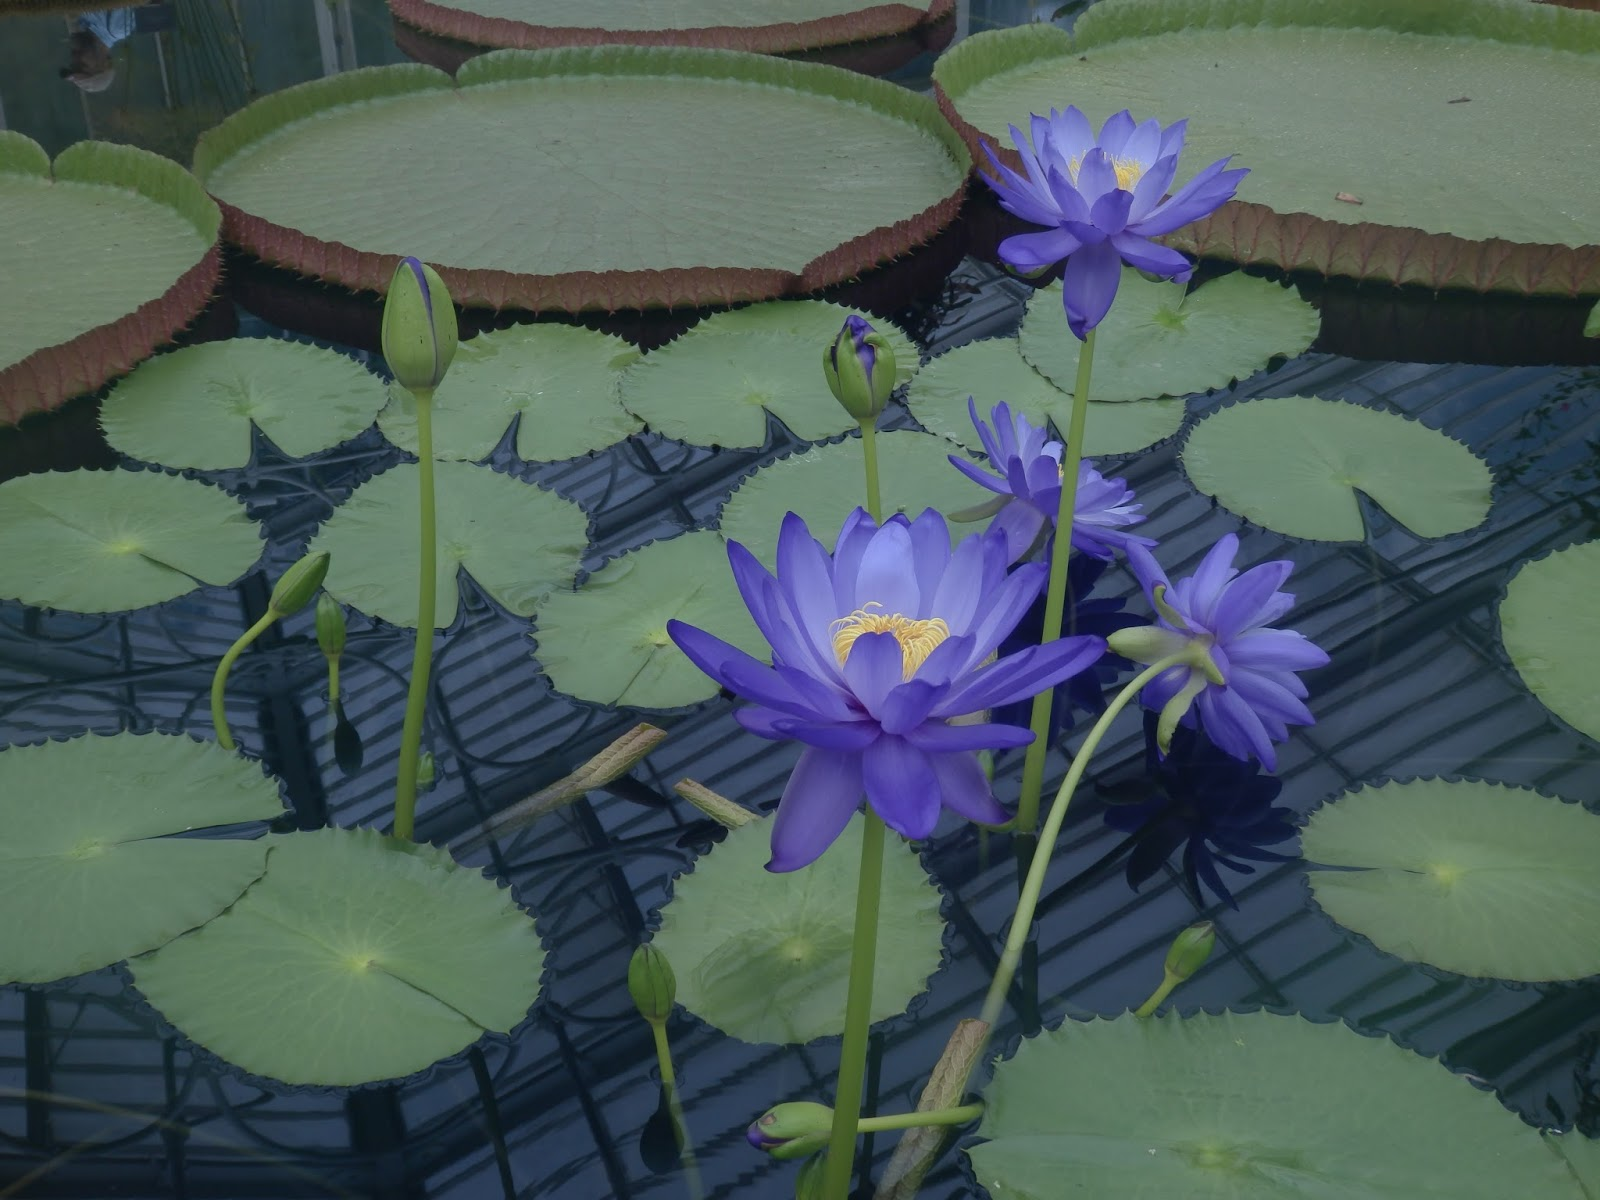 Judith i bridgland july 2015 a swelteringly hot waterlily house and the princess of wales conservatory the waterlilies are only viewable during the summer months when they flower izmirmasajfo